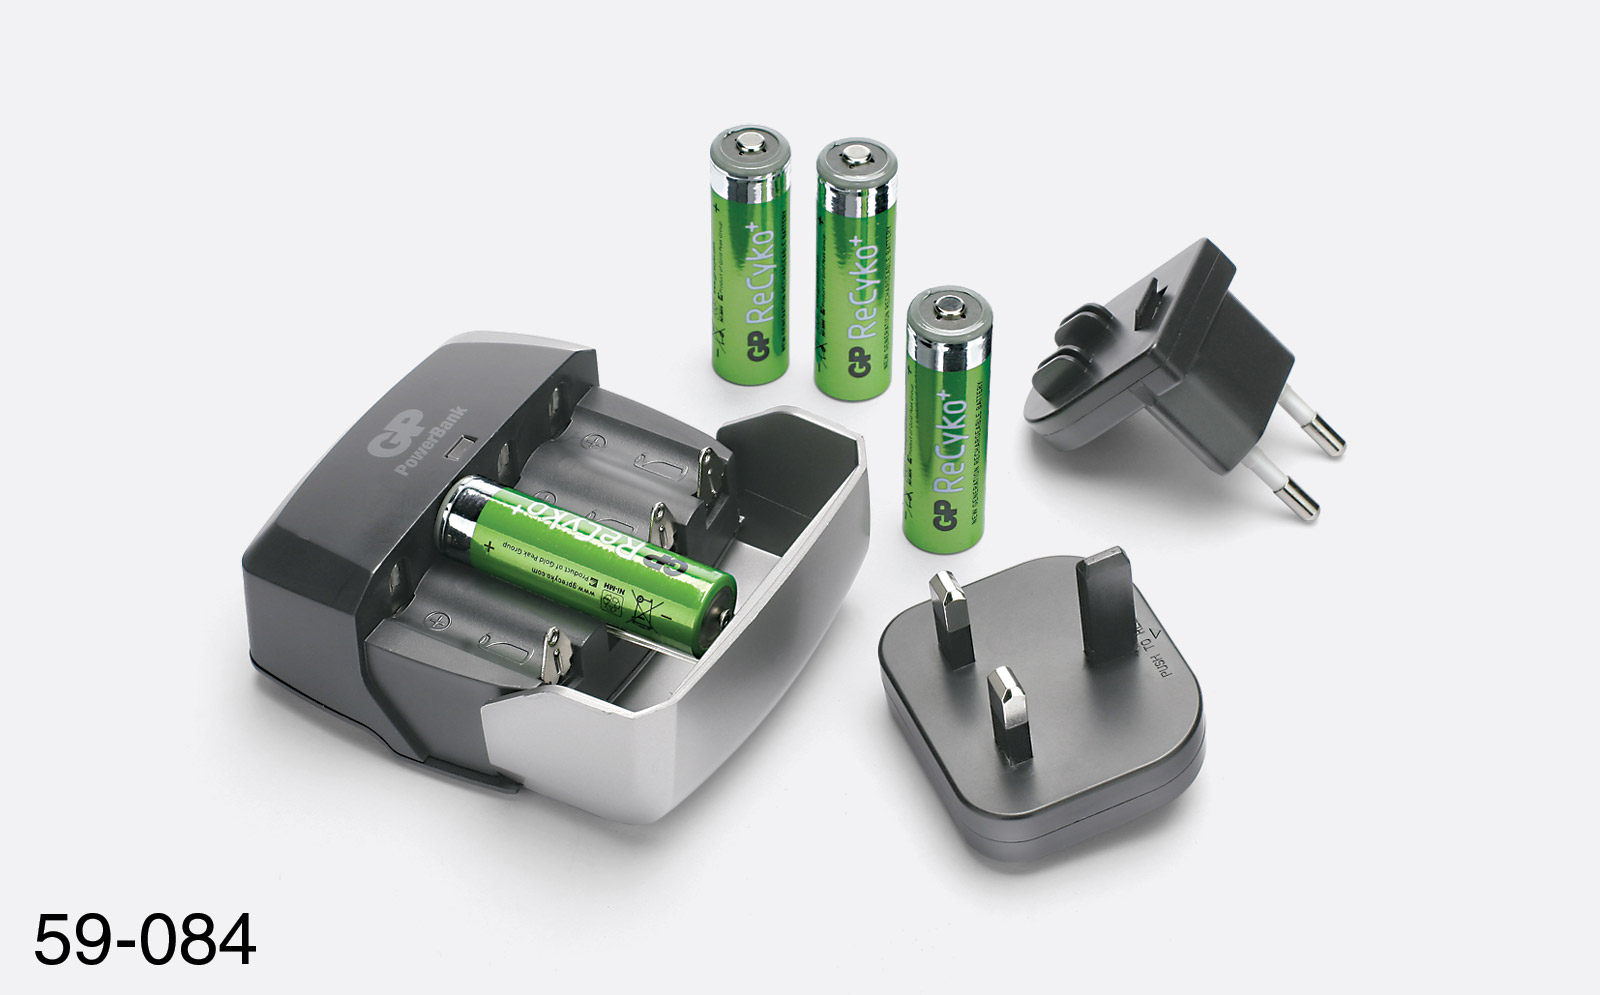 gp powerbank battery charger